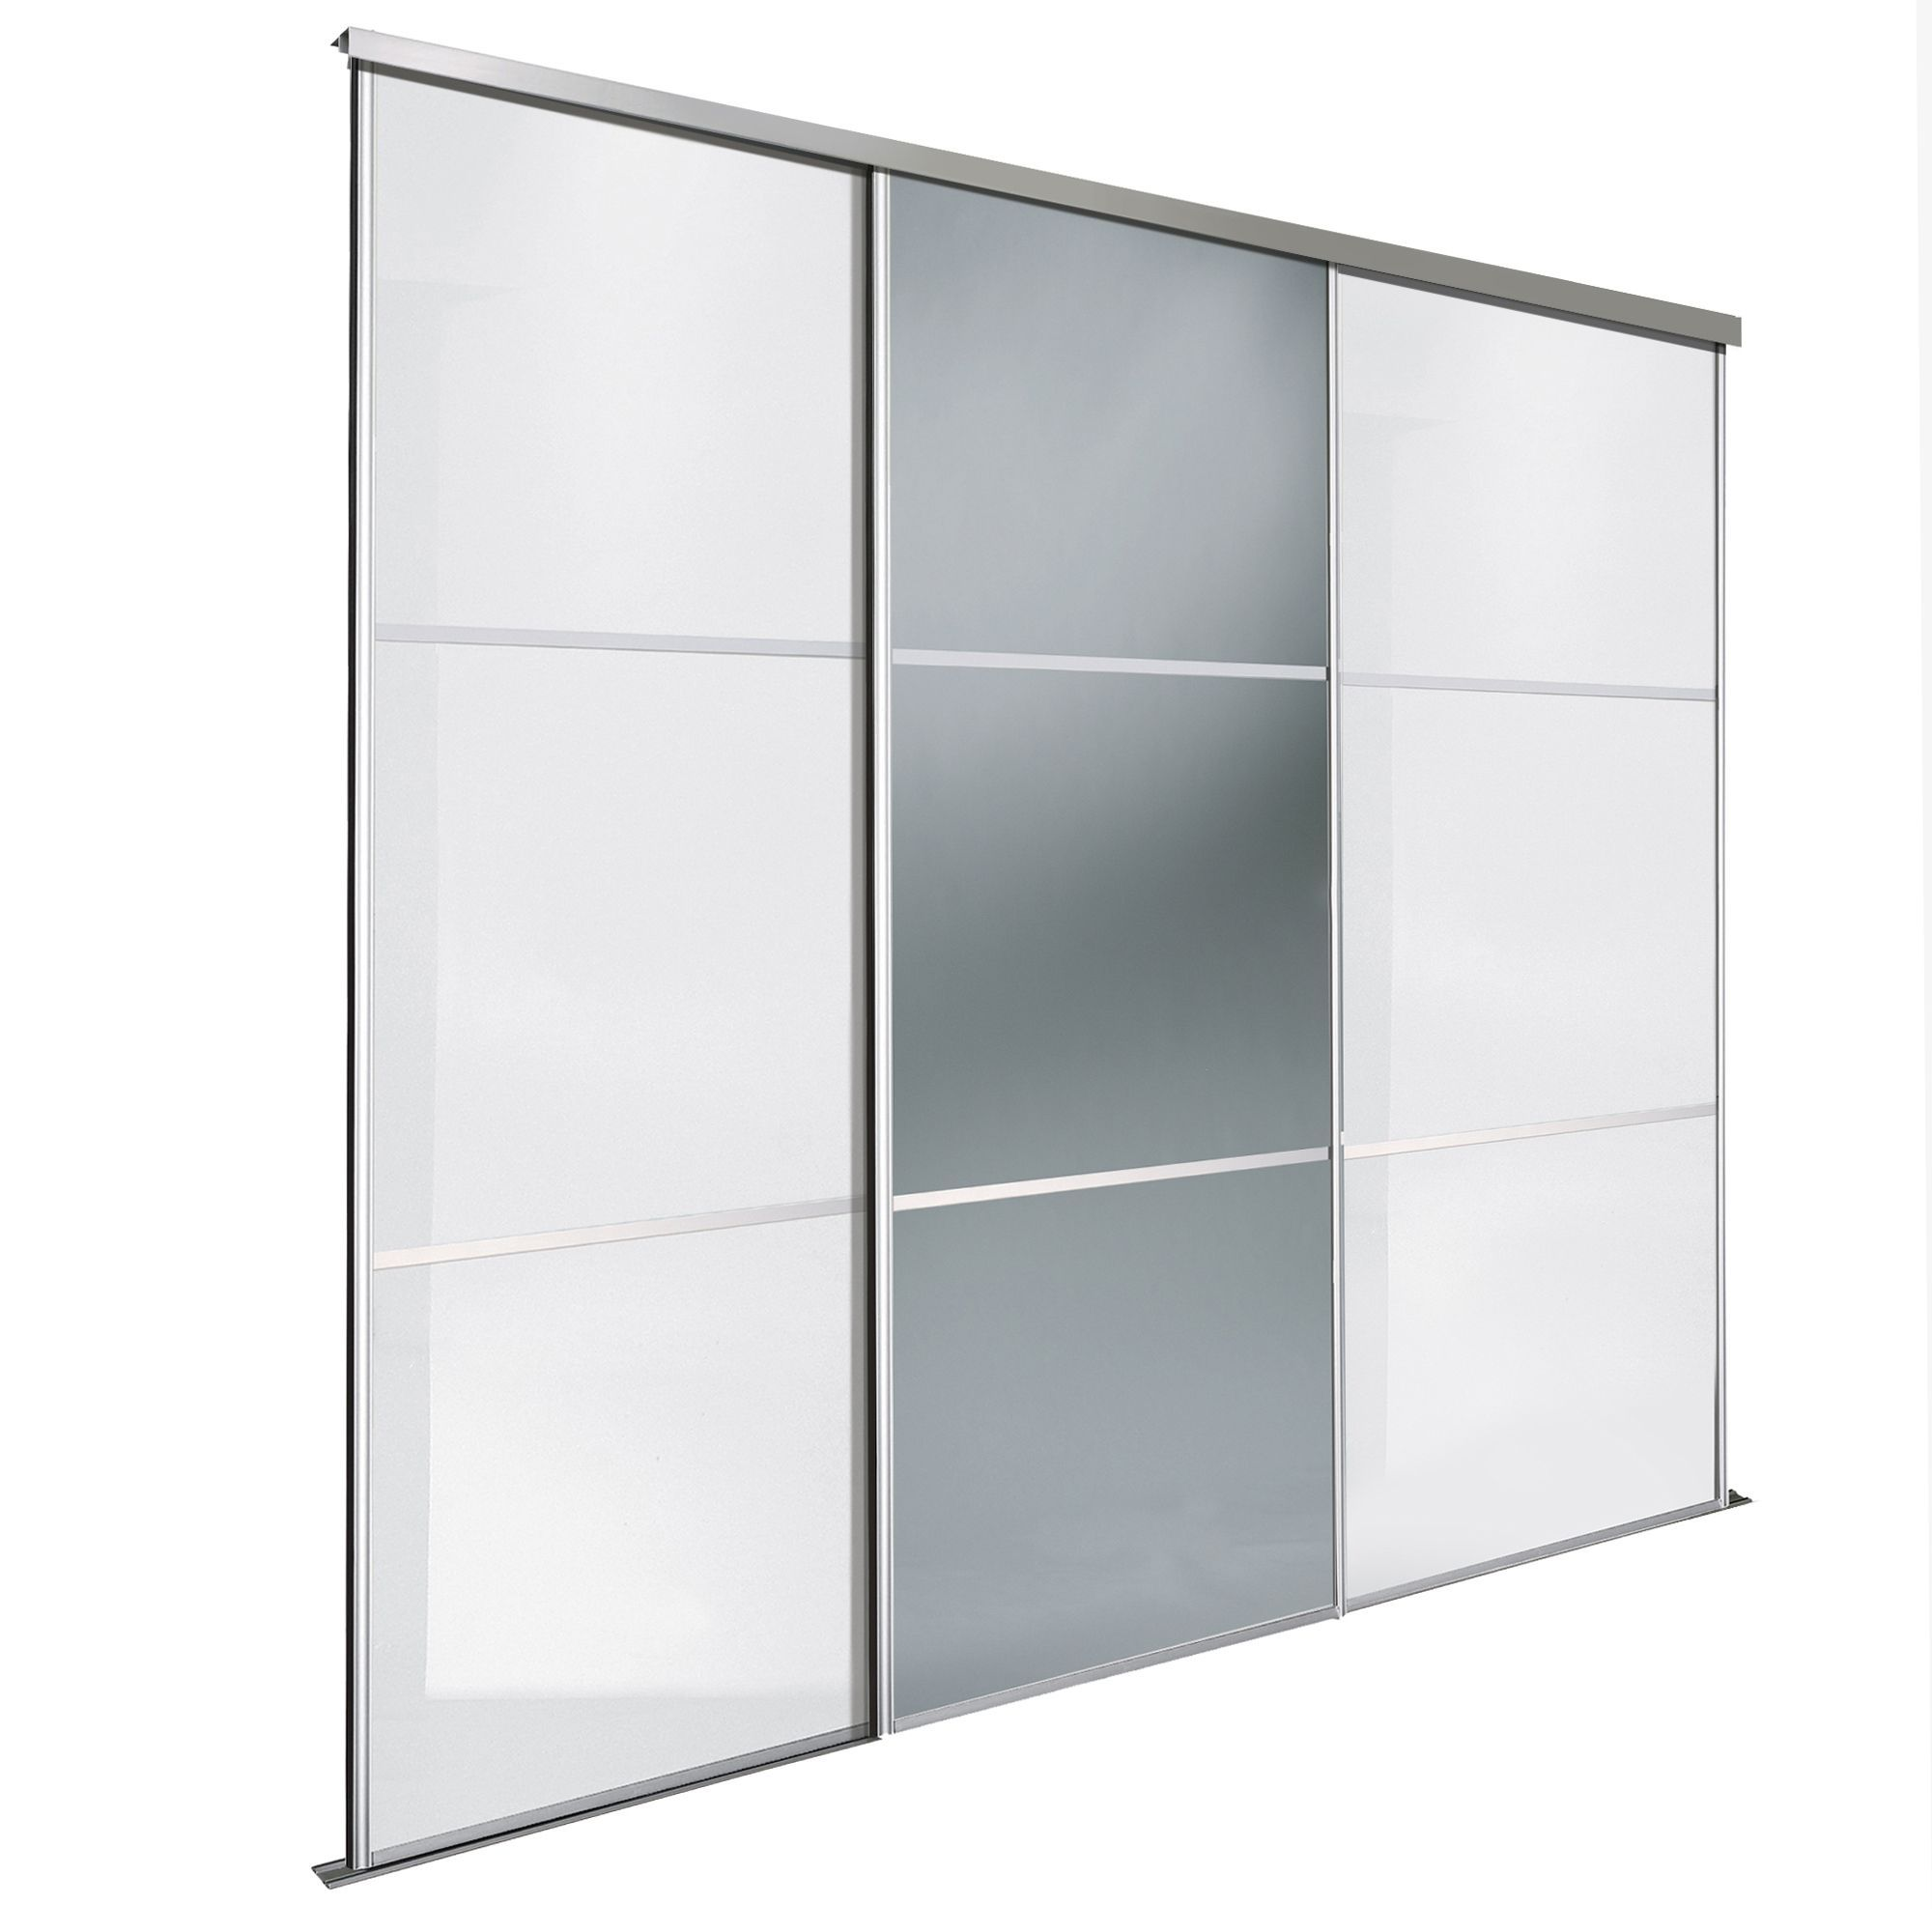 Wardrobe Kits Premium Select White And Smoked Grey Mirror Sliding Wardrobe